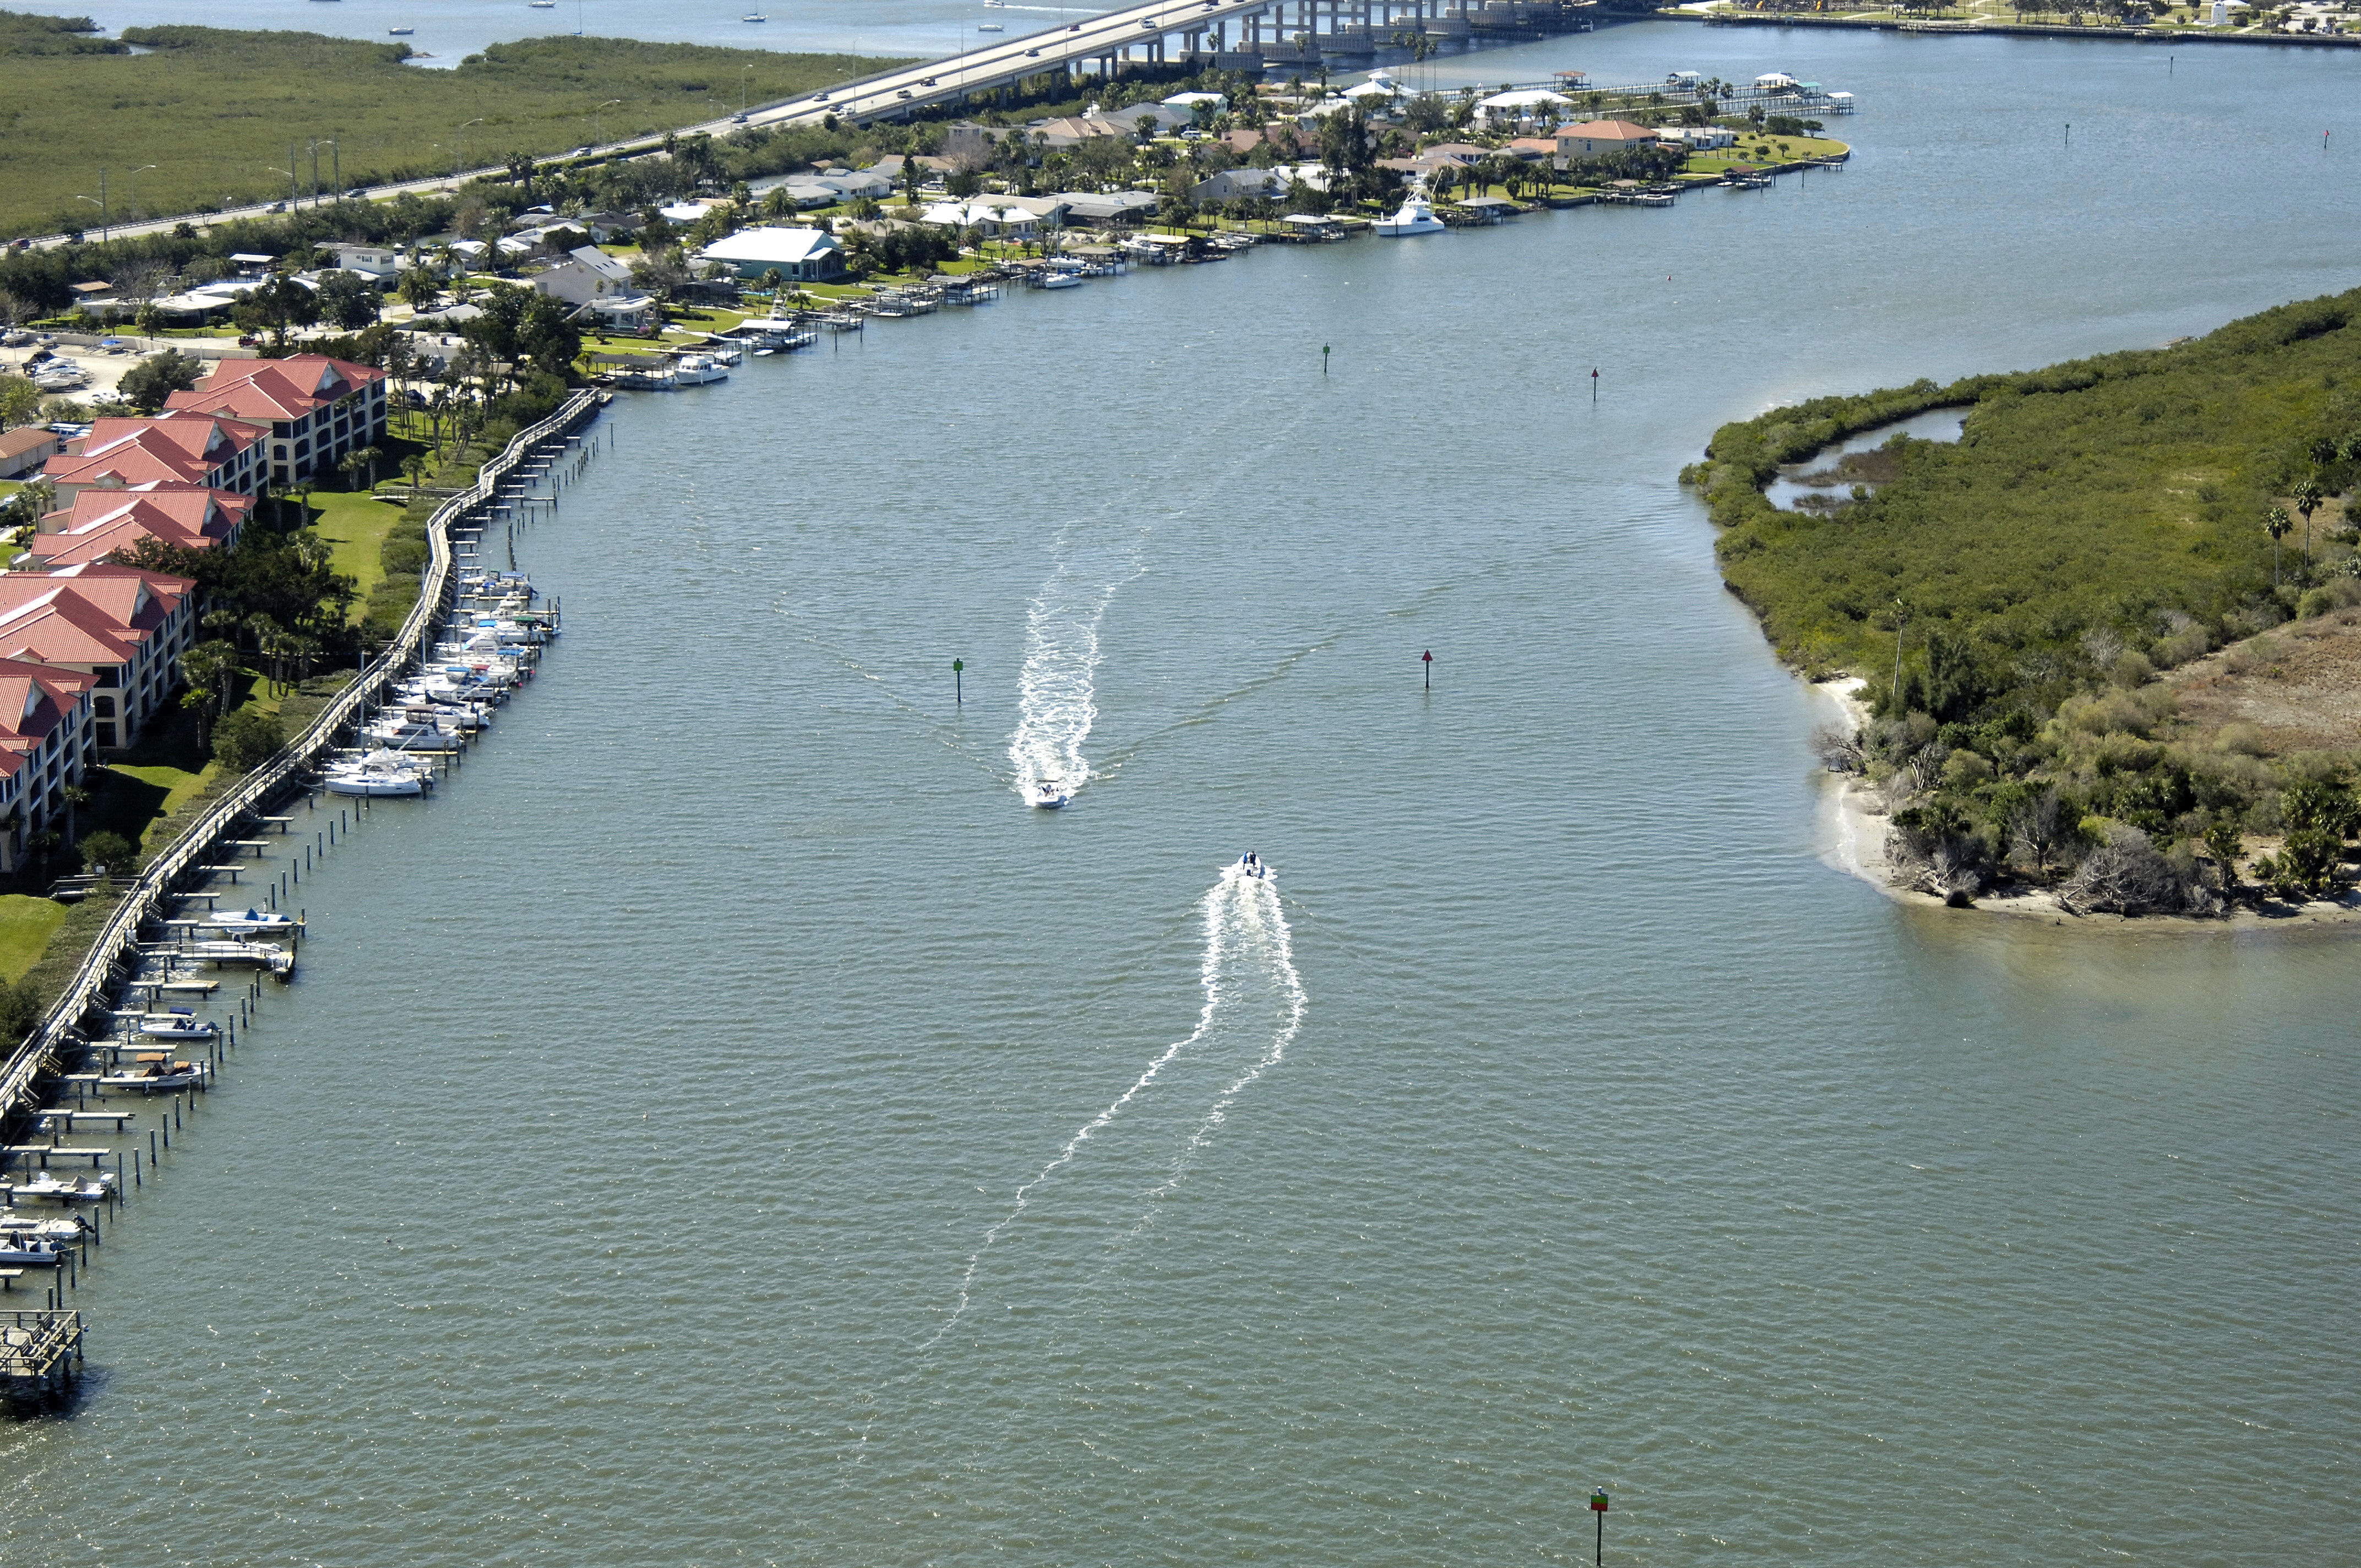 Sheephead cut inlet in new smyrna beach fl united states inlet sheephead cut inlet nvjuhfo Gallery